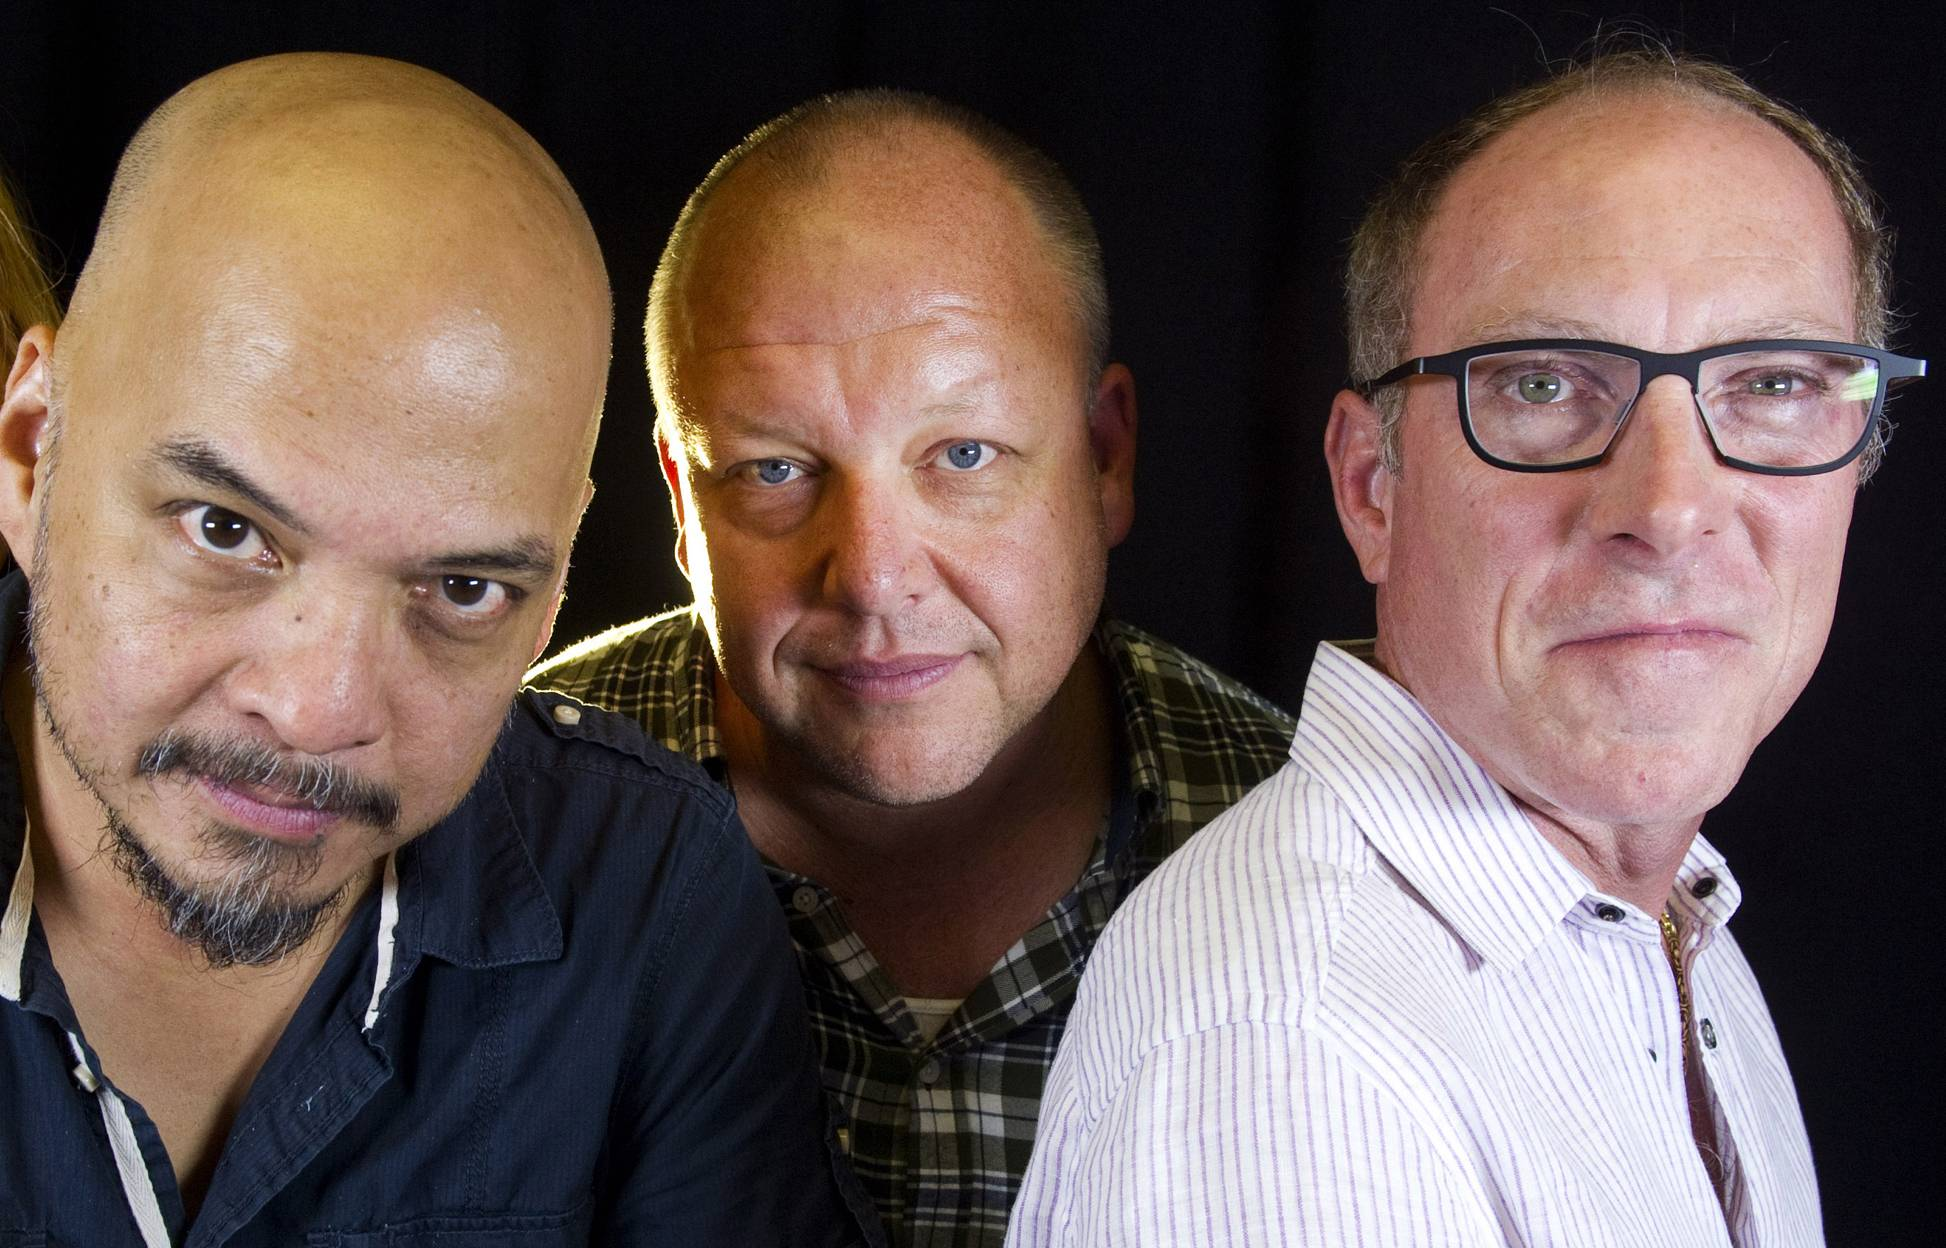 The Pixies -- featuring Joey Santiago, left, Black Francis and David Lovering -- are making new music and planning to tour.